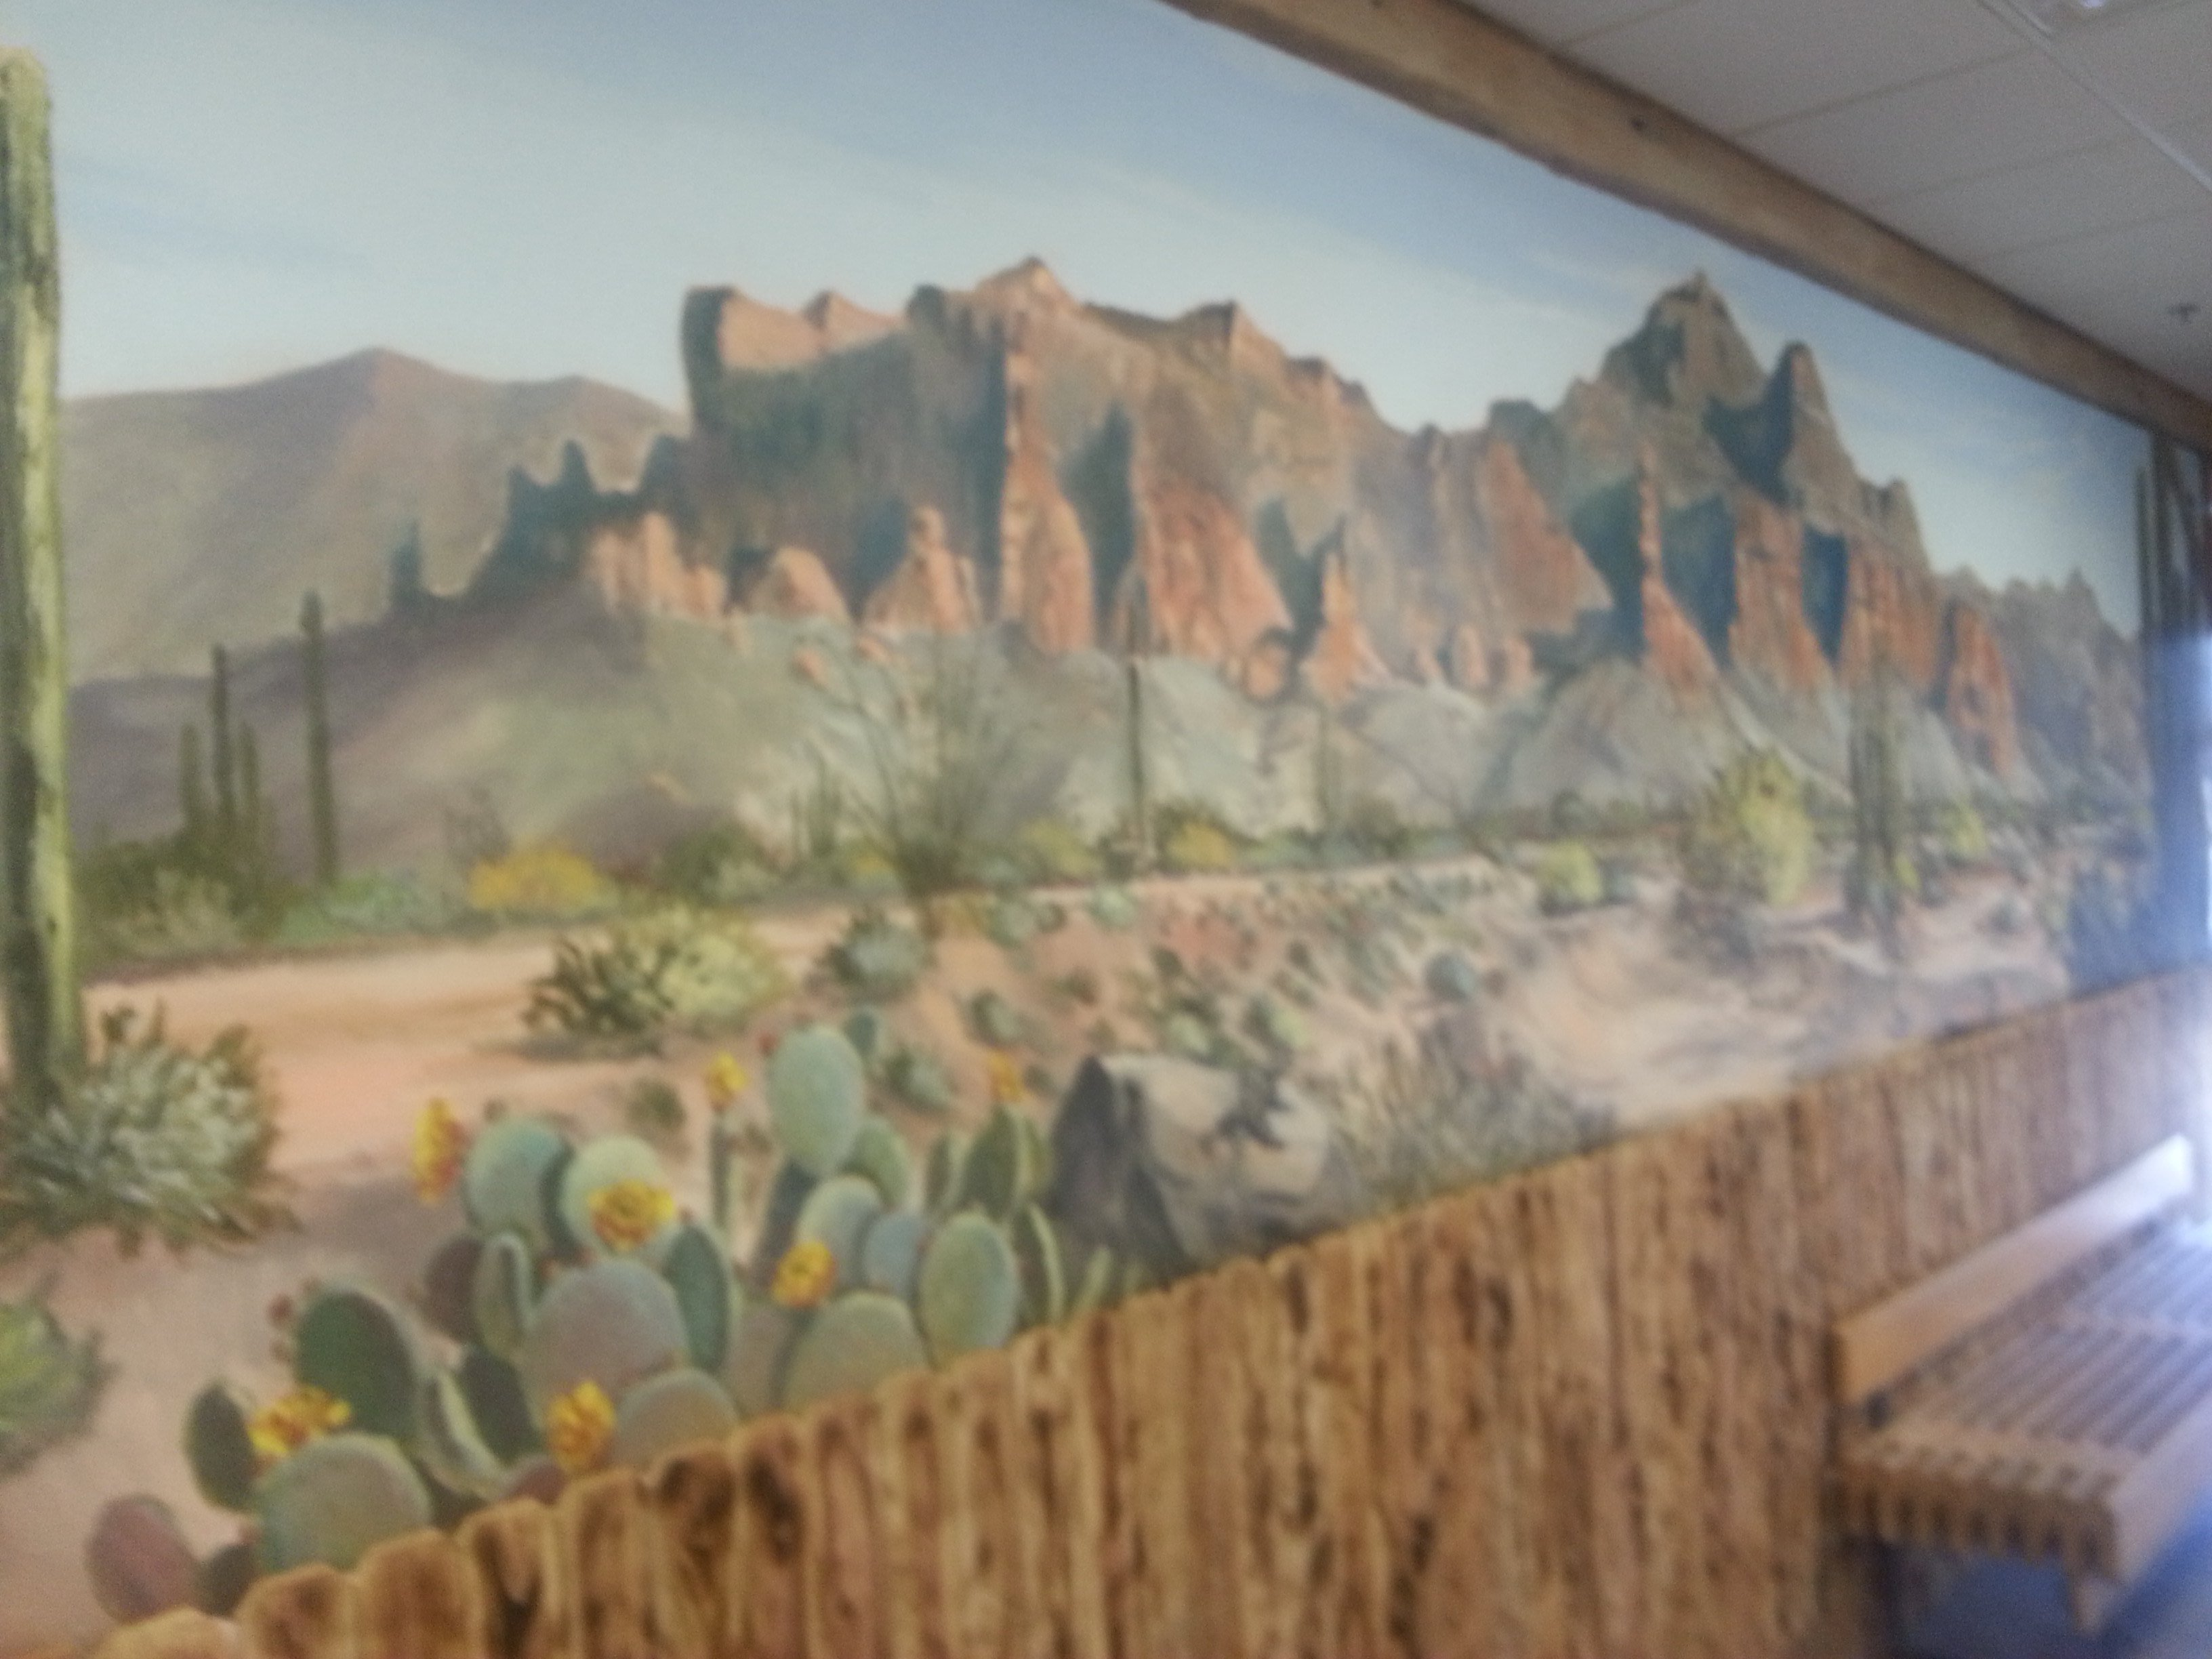 Arizona commercial art gallery i love murals by gina ribaudo for Commercial mural painting